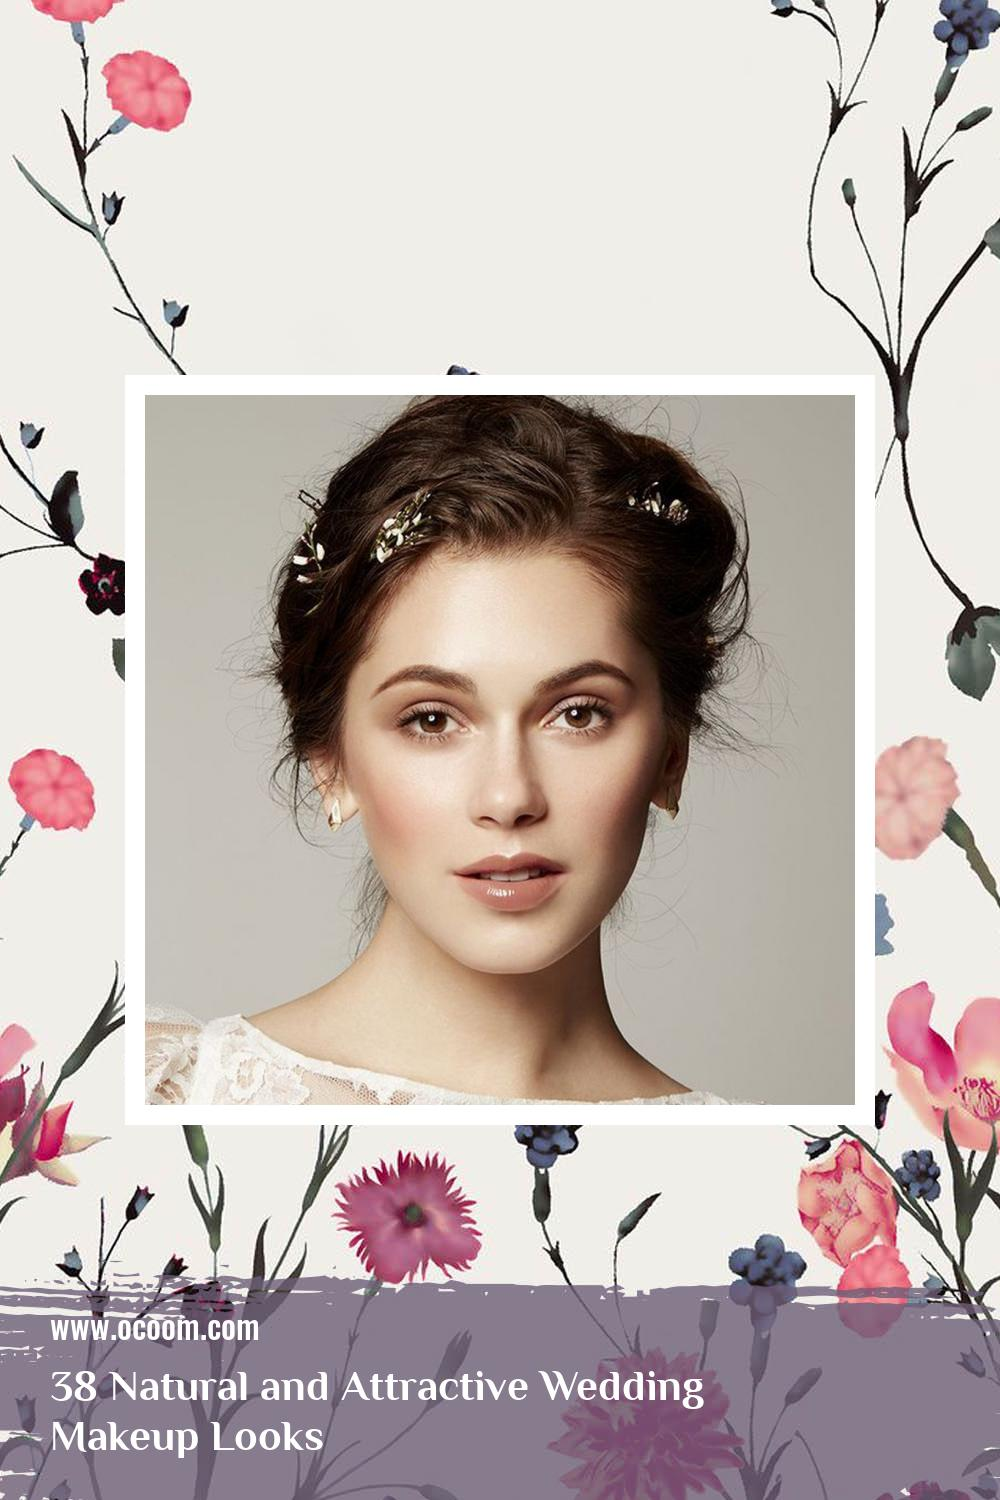 38 Natural and Attractive Wedding Makeup Looks 32